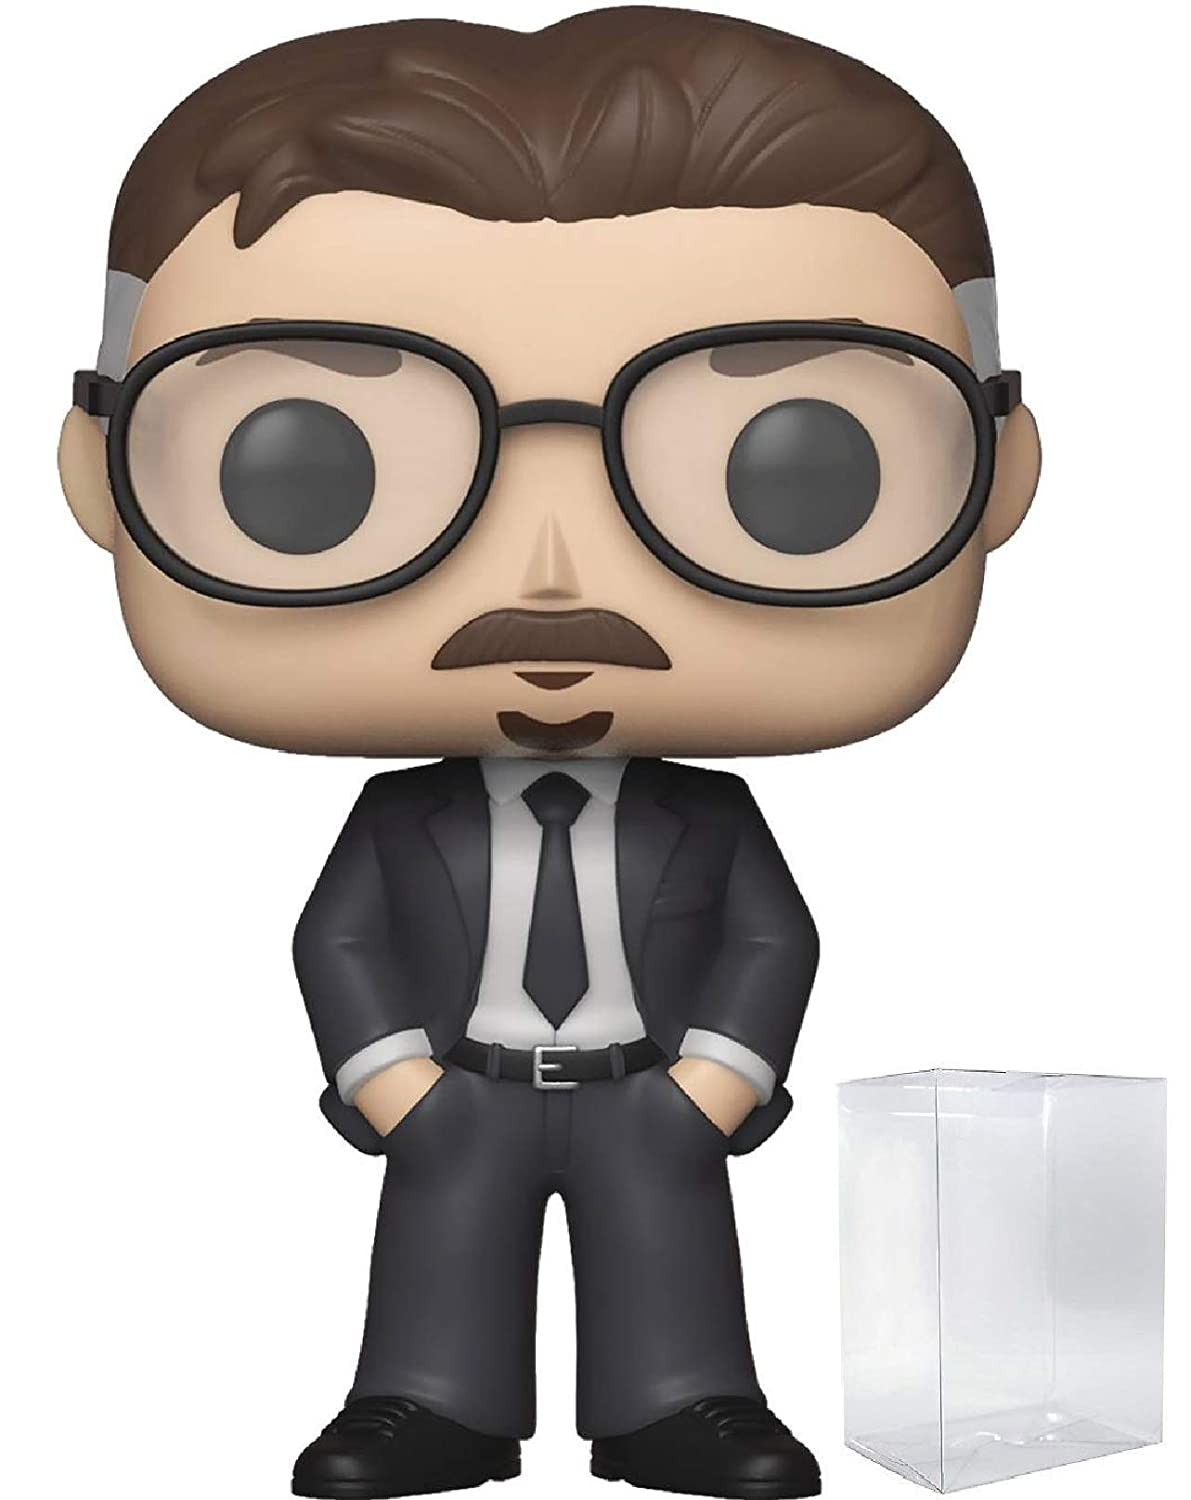 Vinyl Figure Funko Directors Vince Gilligan Pop Includes Compatible Pop Box Protector Case